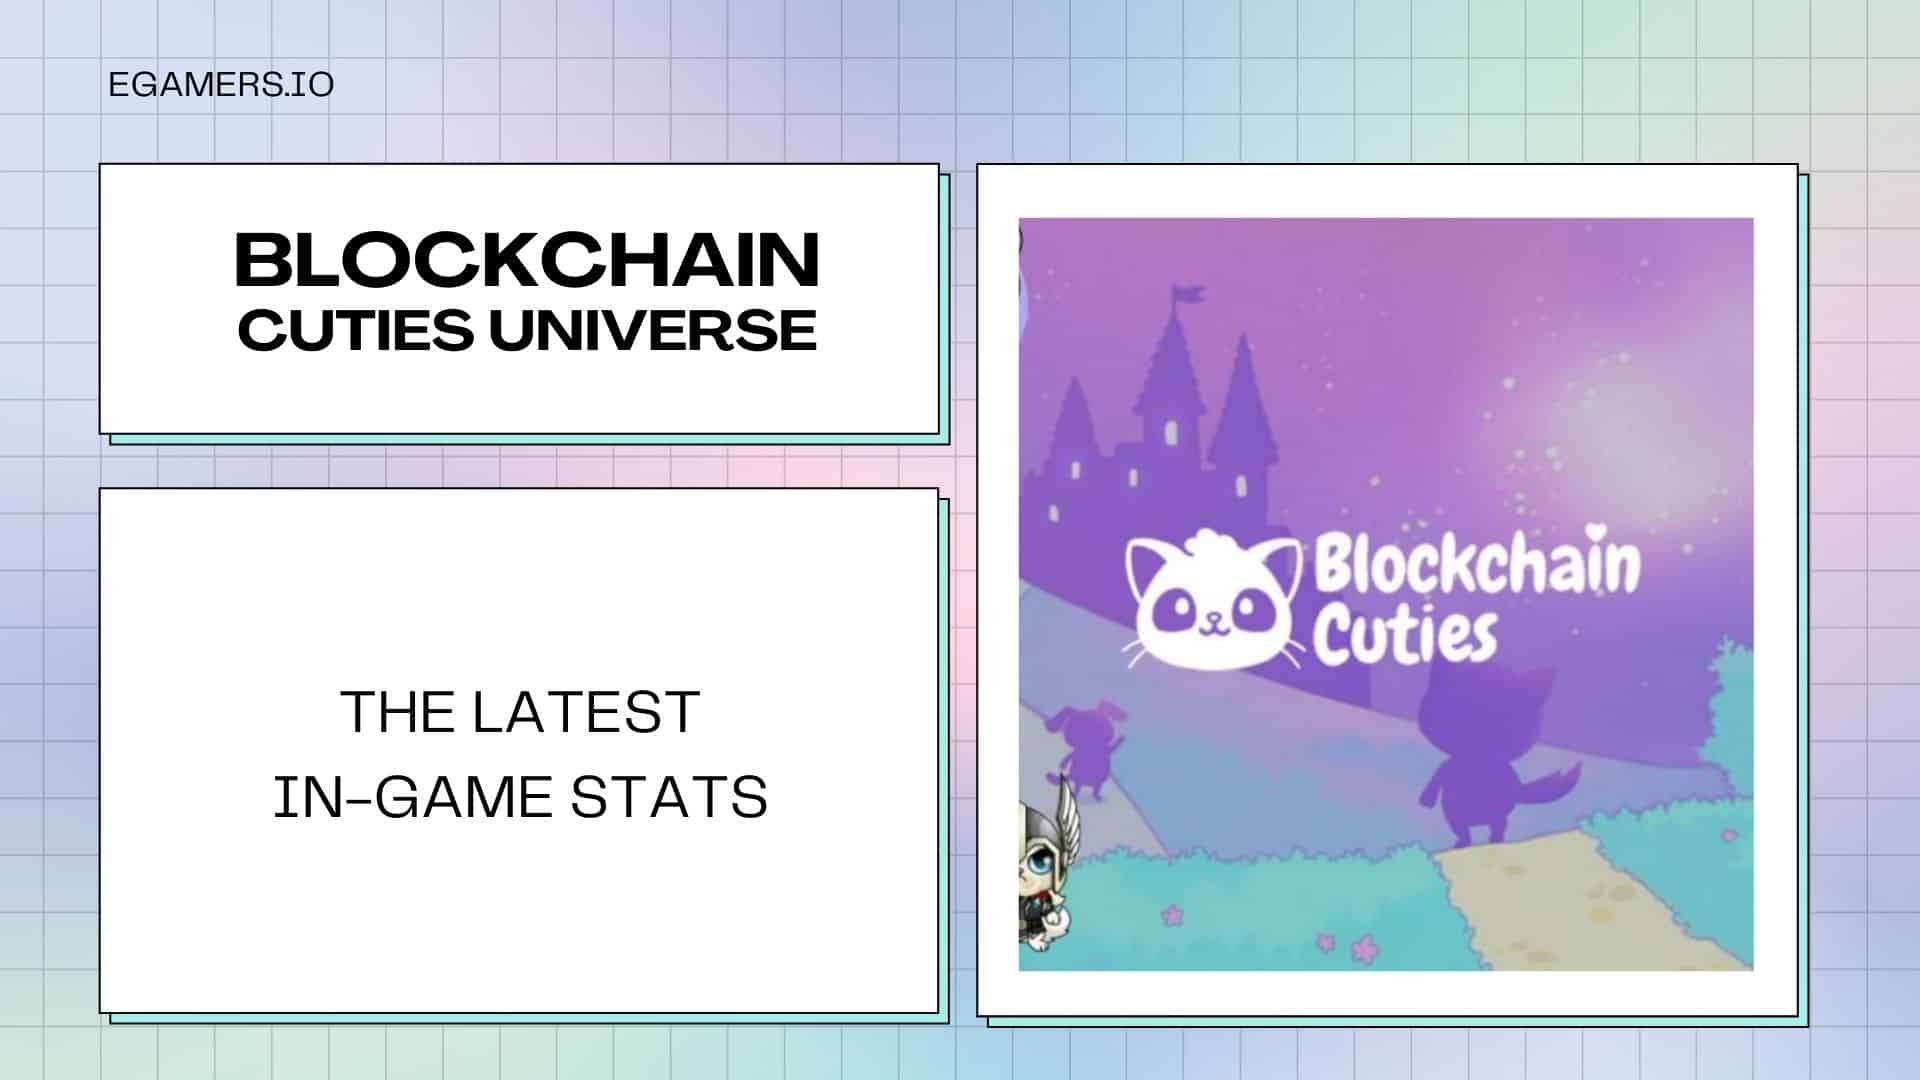 Blockchain Cuties in-game stats